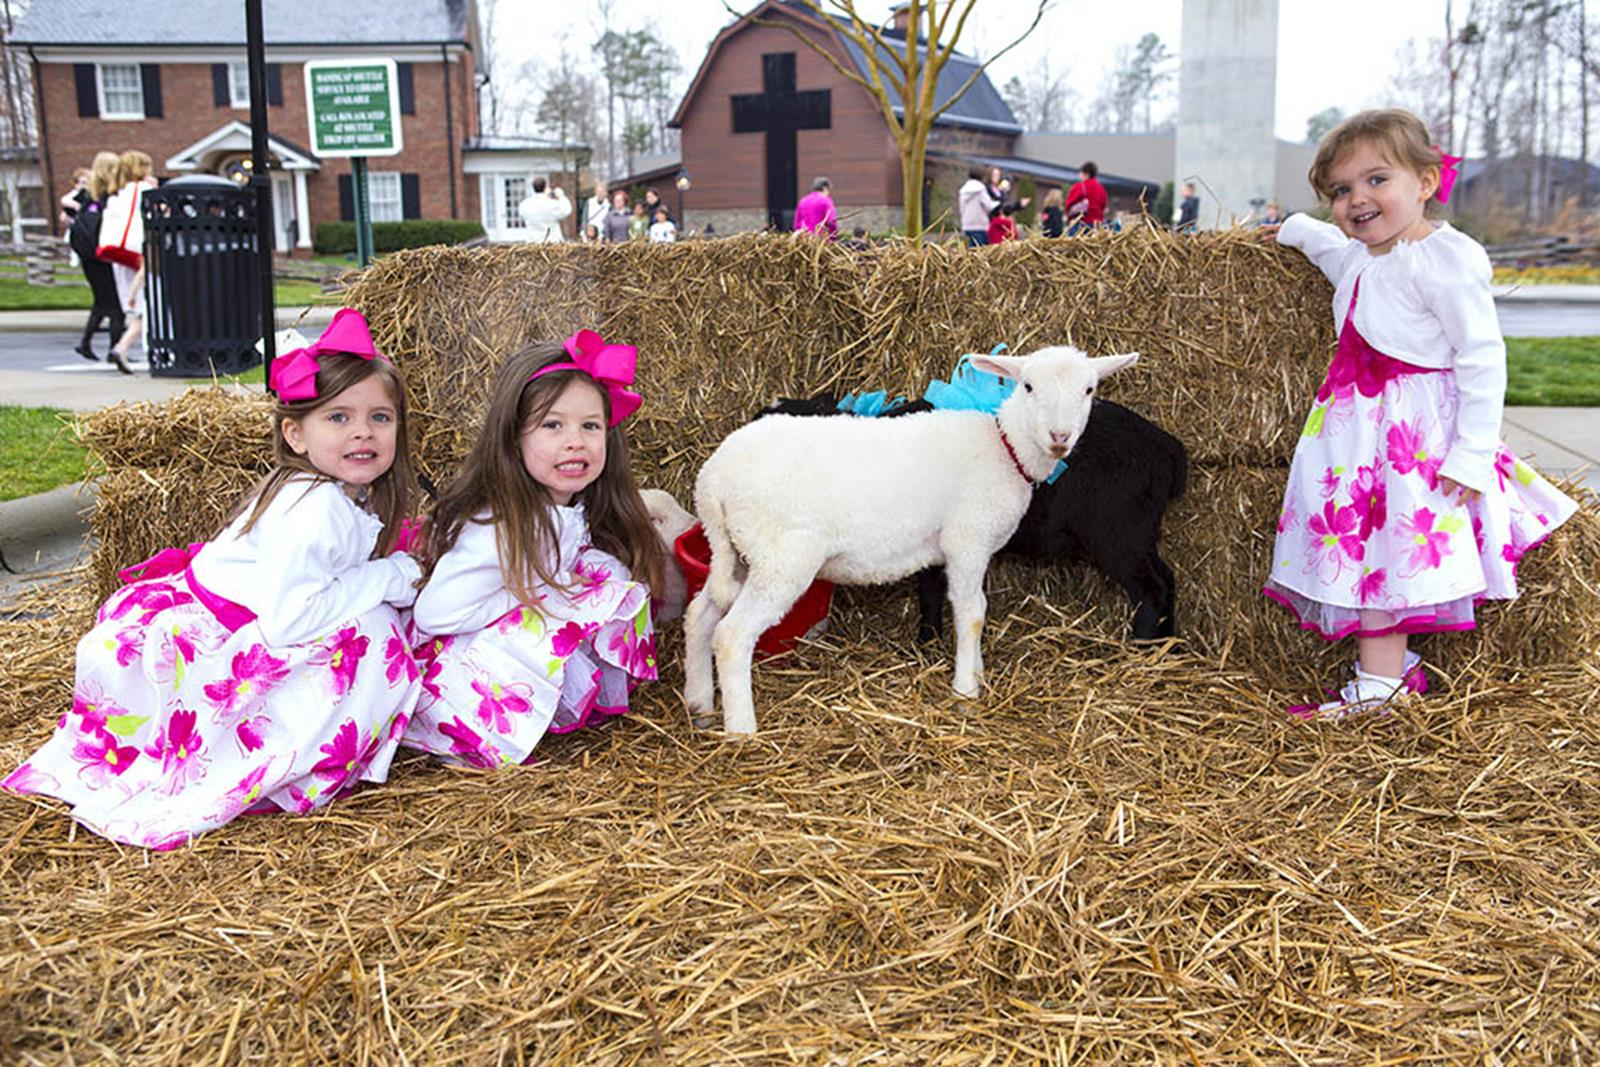 Children visit the lambs during the annual Easter celebration at the Library.